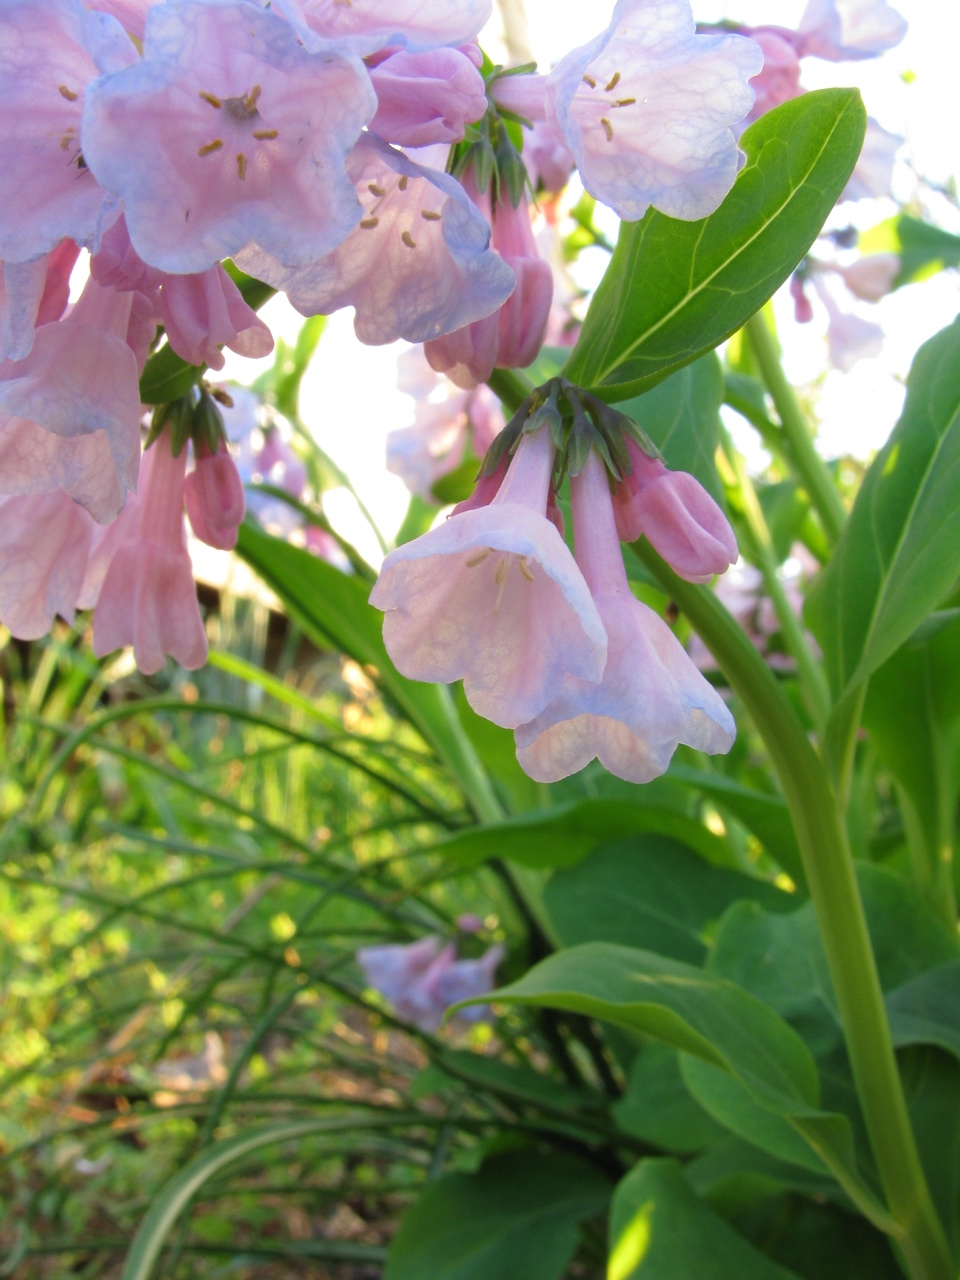 The Scientific Name is Mertensia virginica. You will likely hear them called Virginia Bluebells, Virginia Cowslip. This picture shows the This particular year, the flowers were mostly pink of Mertensia virginica